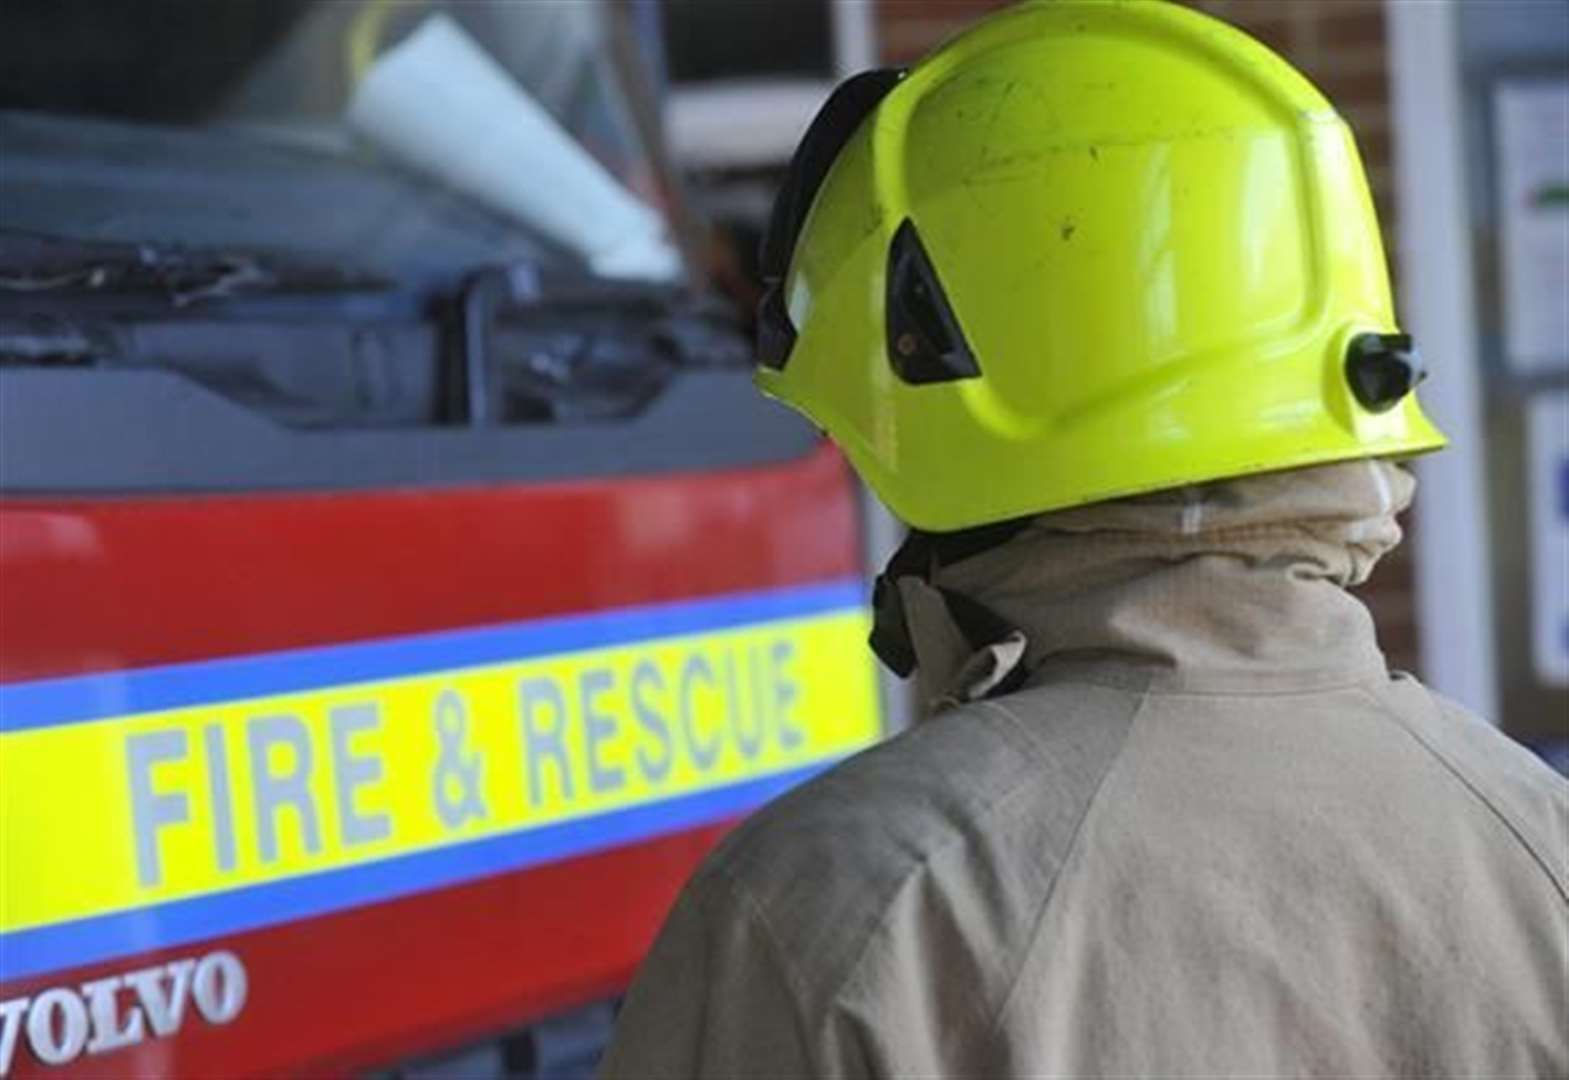 Firefighters tackle car blaze in Grantham street